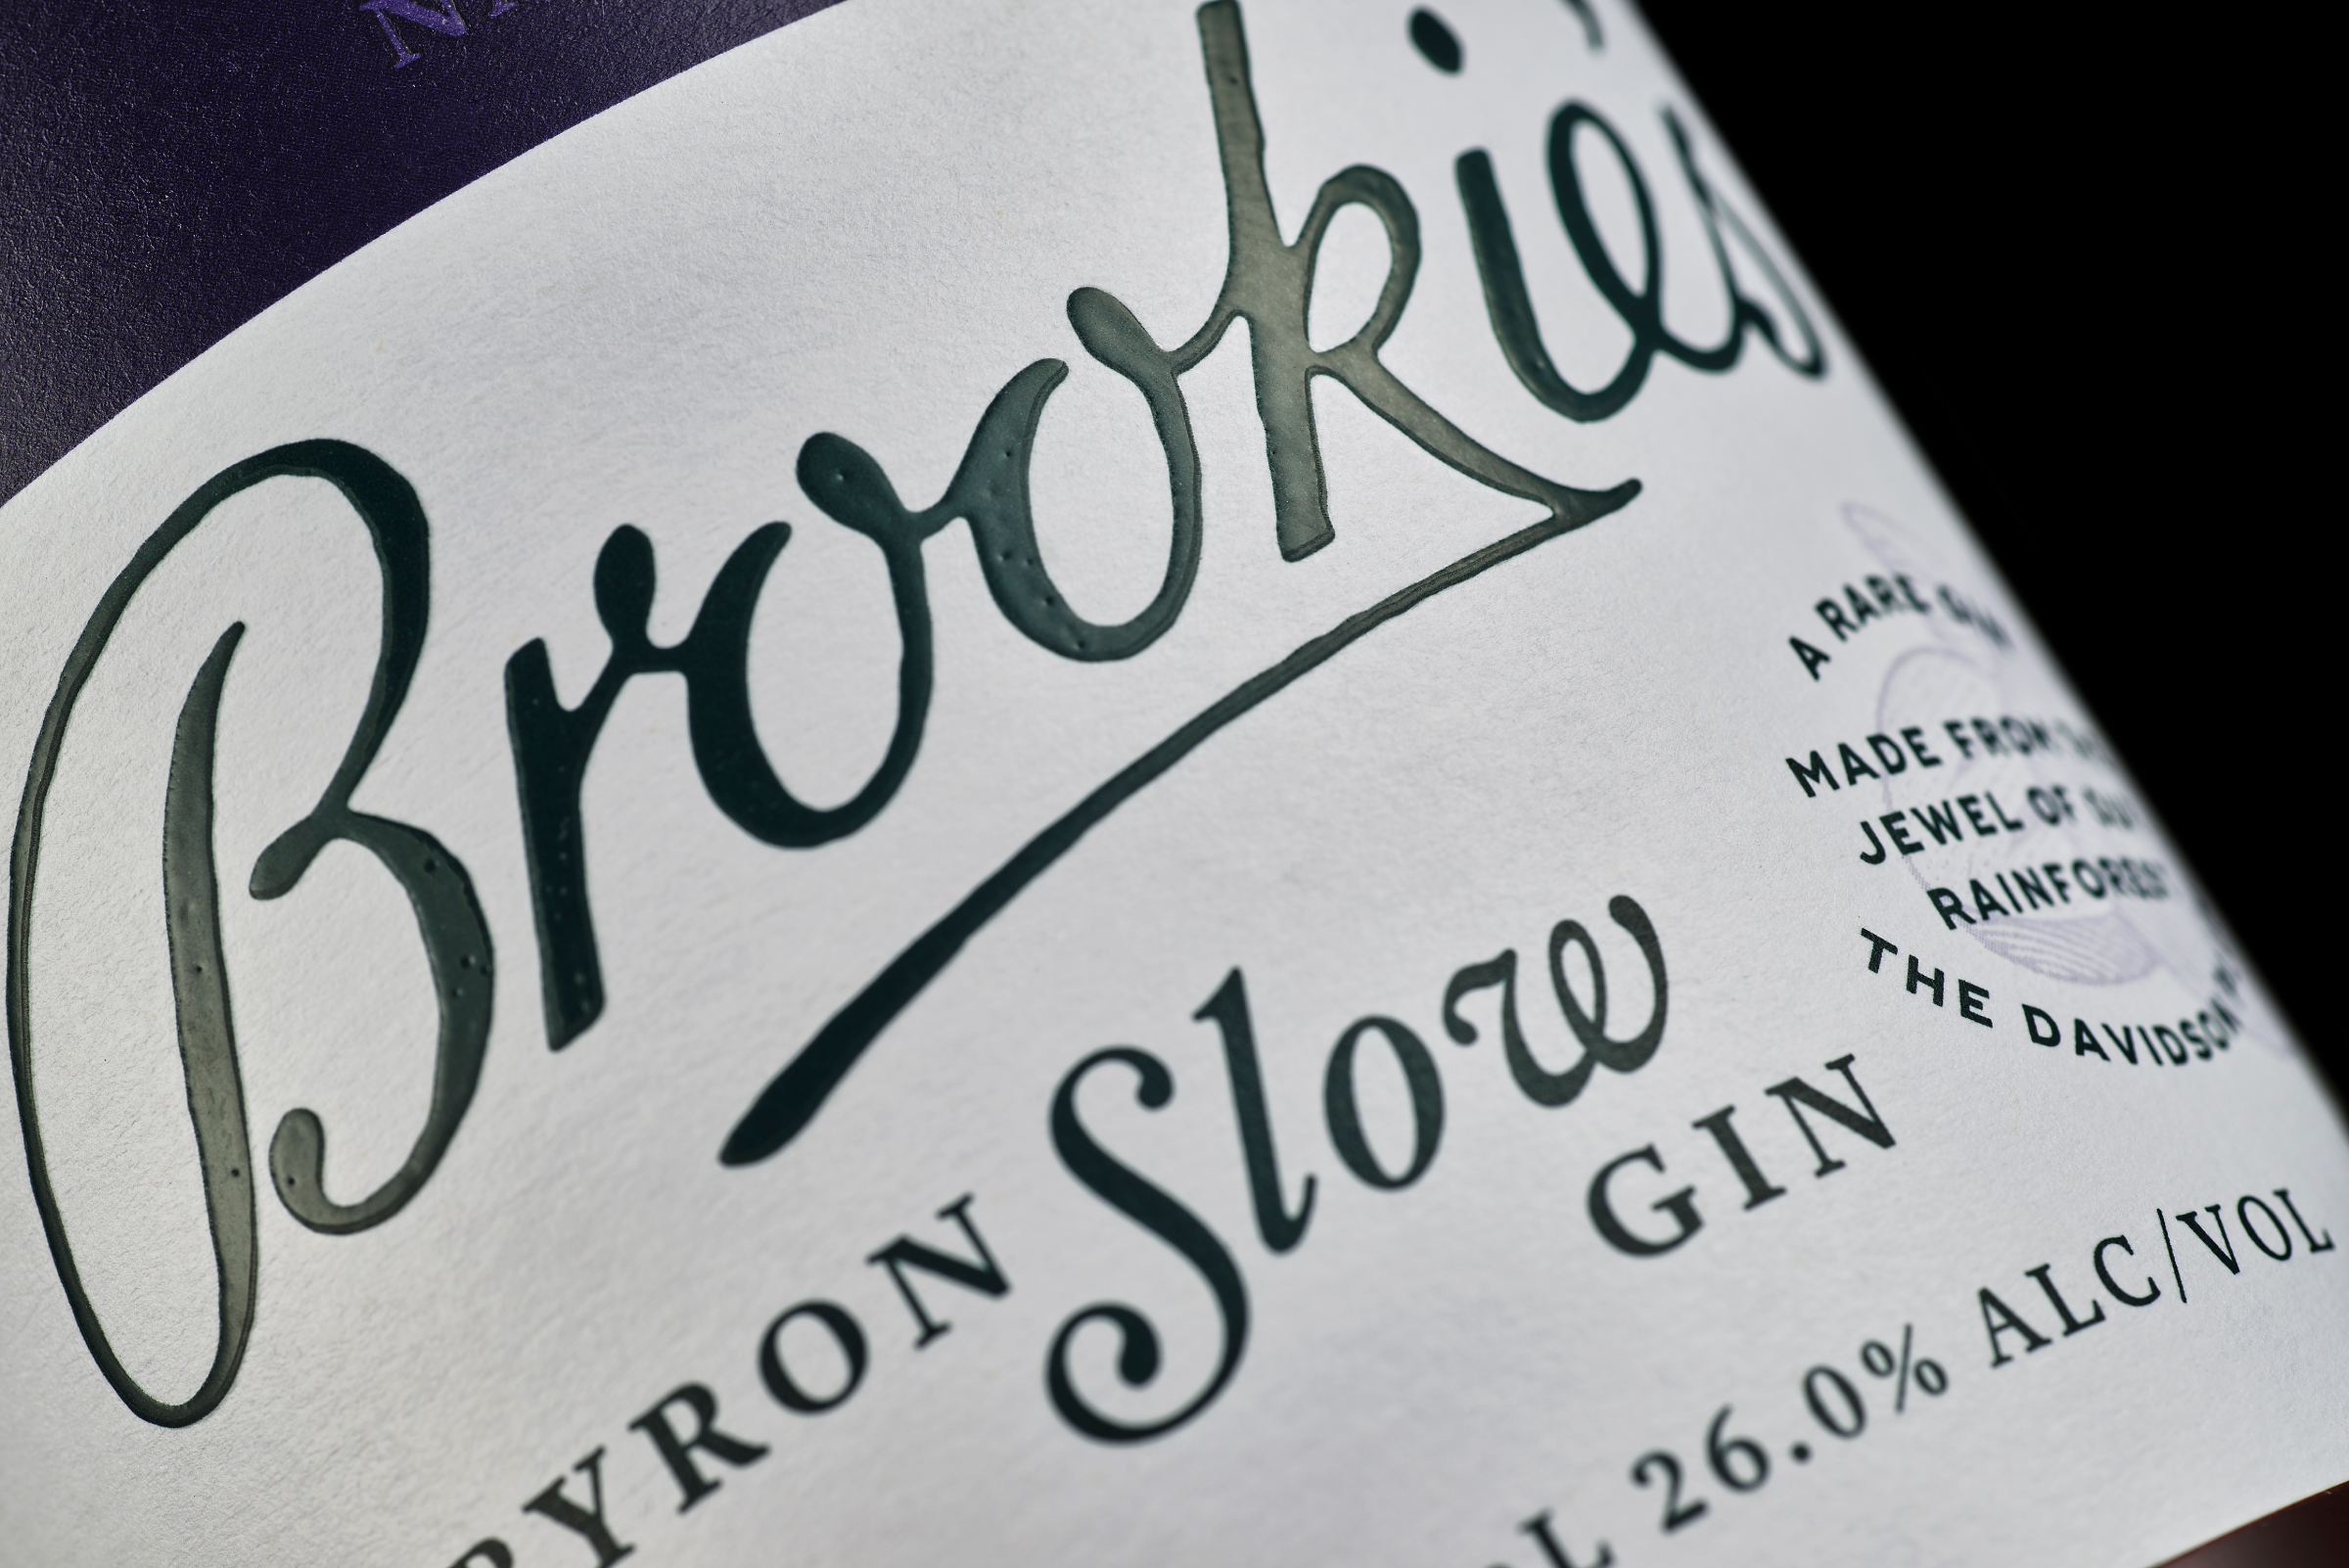 Dry Gin and Slow Gin with a Passion to Highlight the Rainforest Regeneration / World Brand & Packaging Design Society